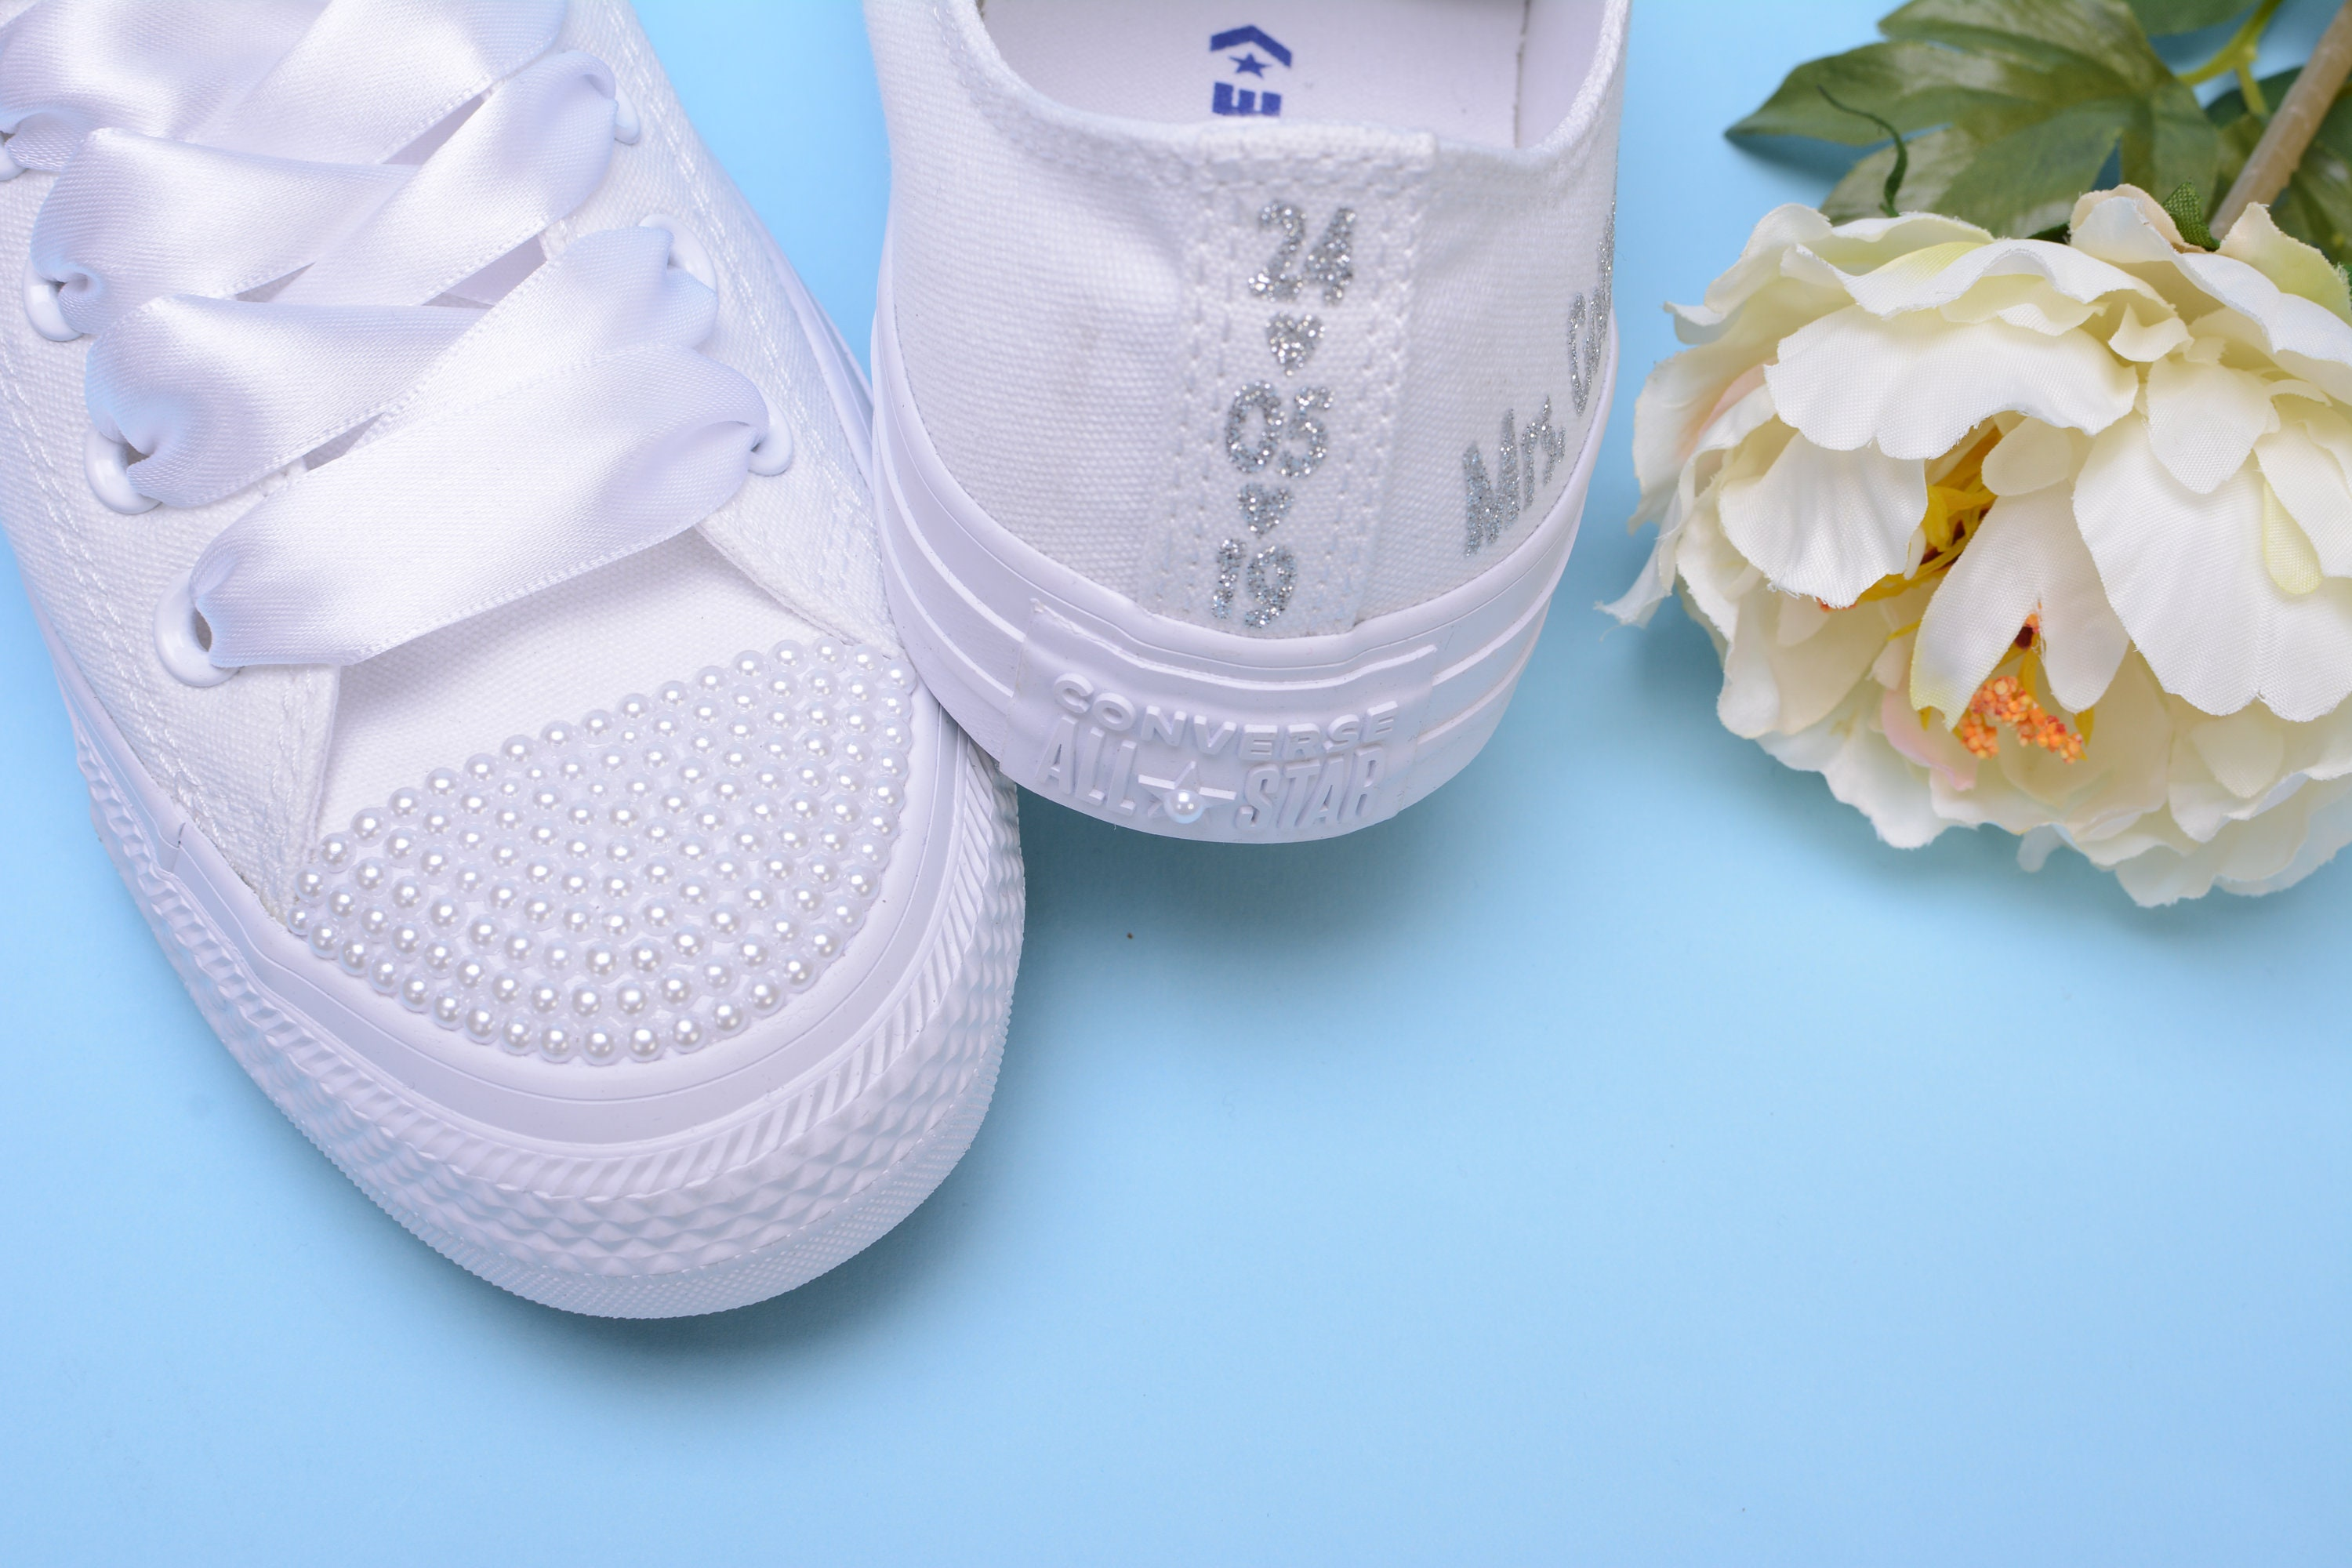 59a2c282abc0 Personalized Converse shoes for Bride